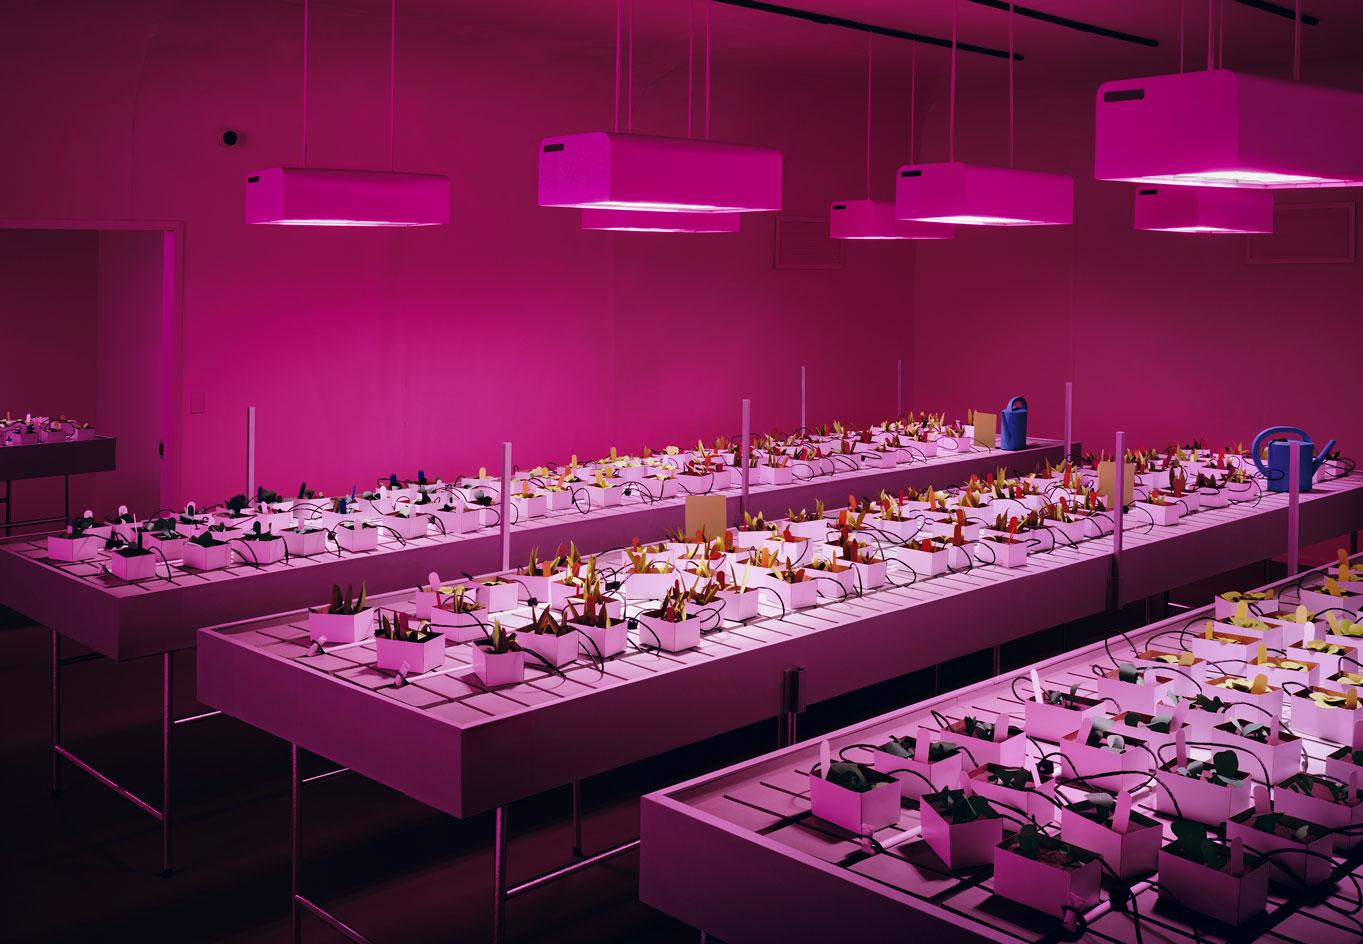 Thomas Demand,Nursery, 2020 C-print/Diasec which pictures a cannabis lab in Canada